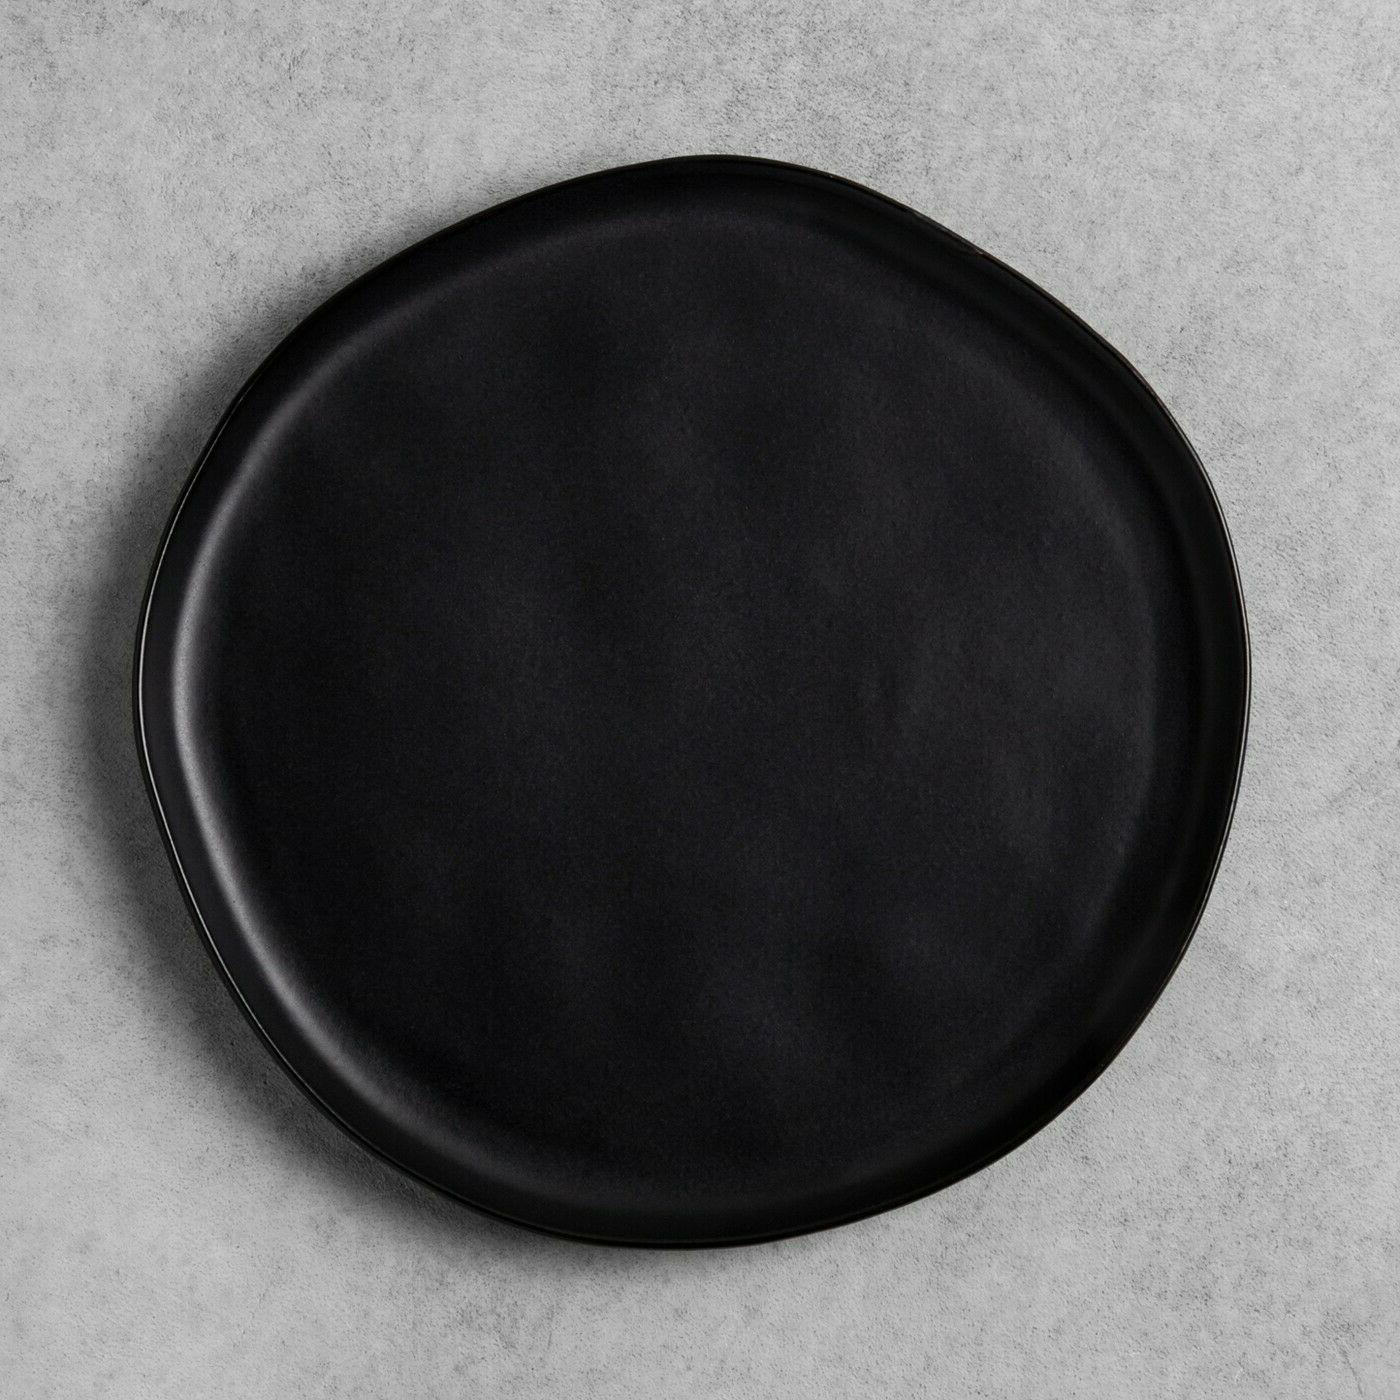 hearth and hand magnolia black matte stoneware